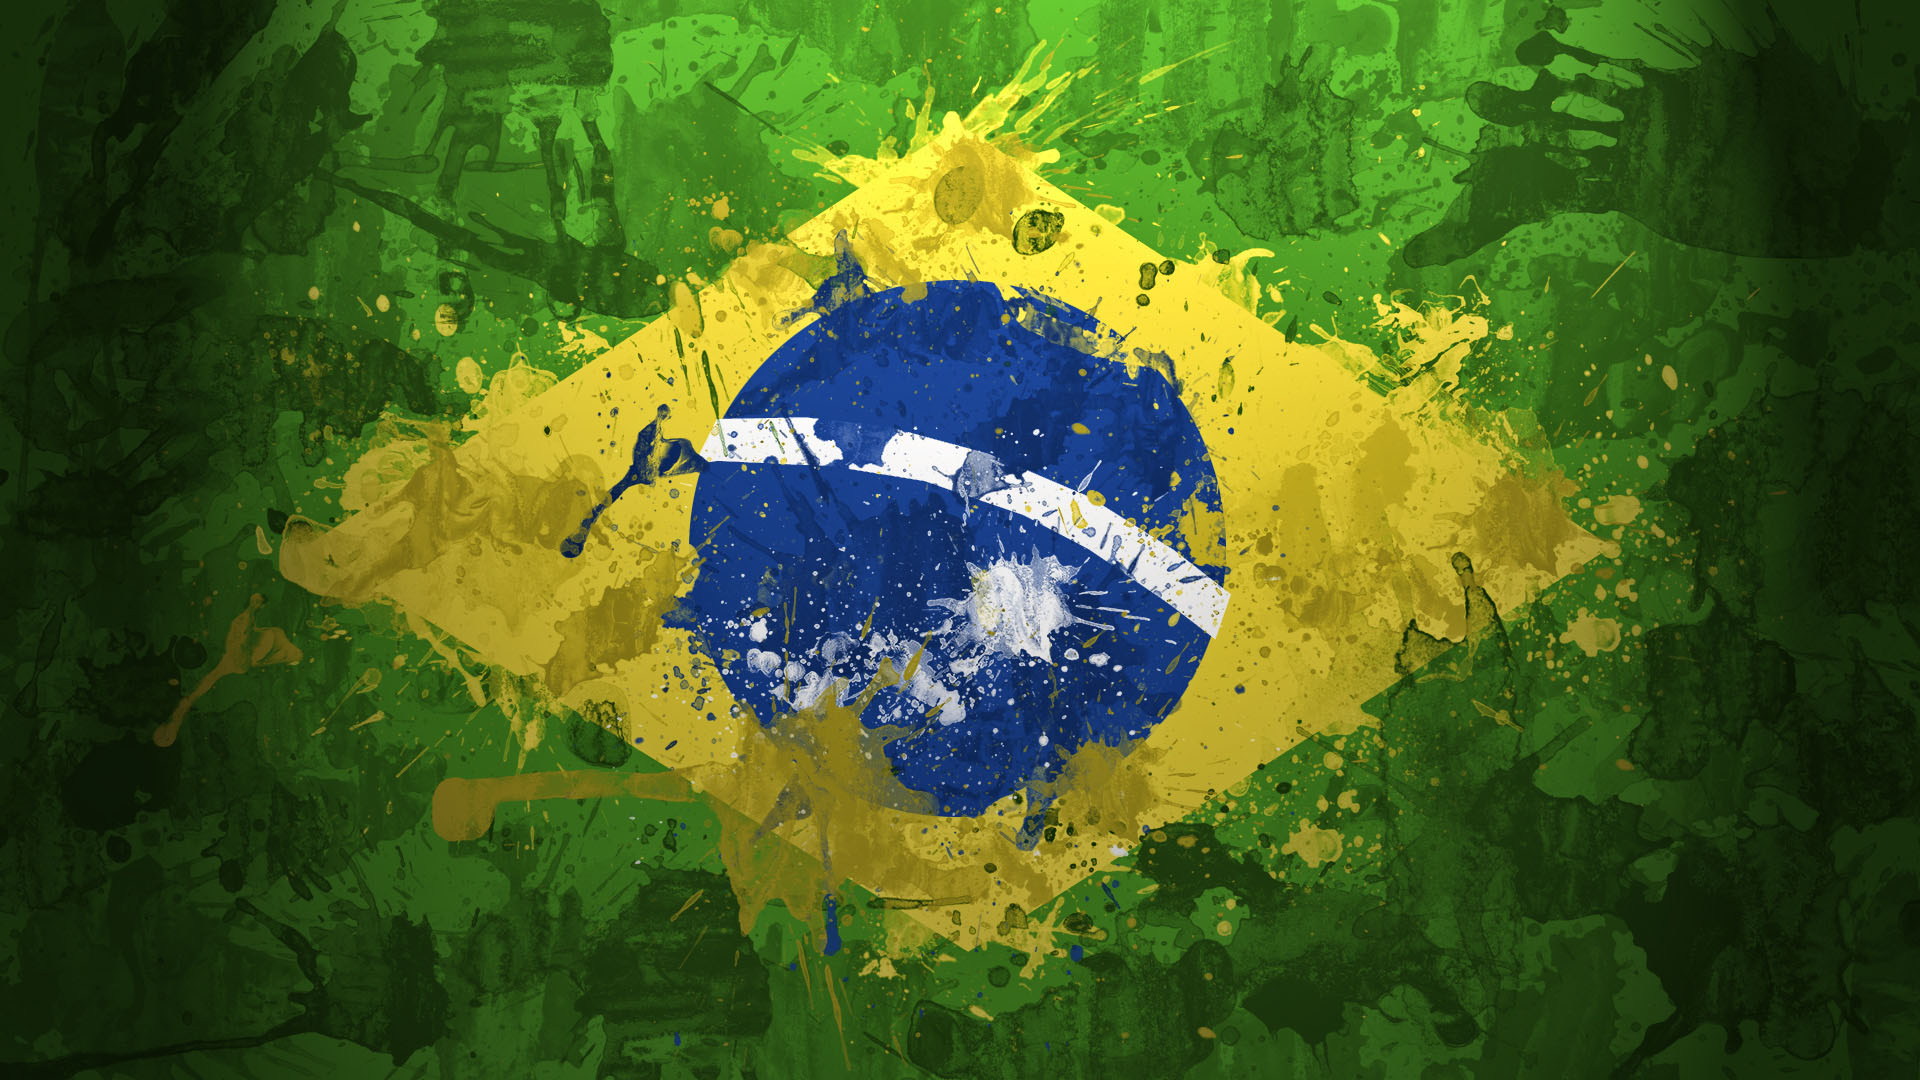 The Flag Of Brazil - A Symbol Of Principle And Progress